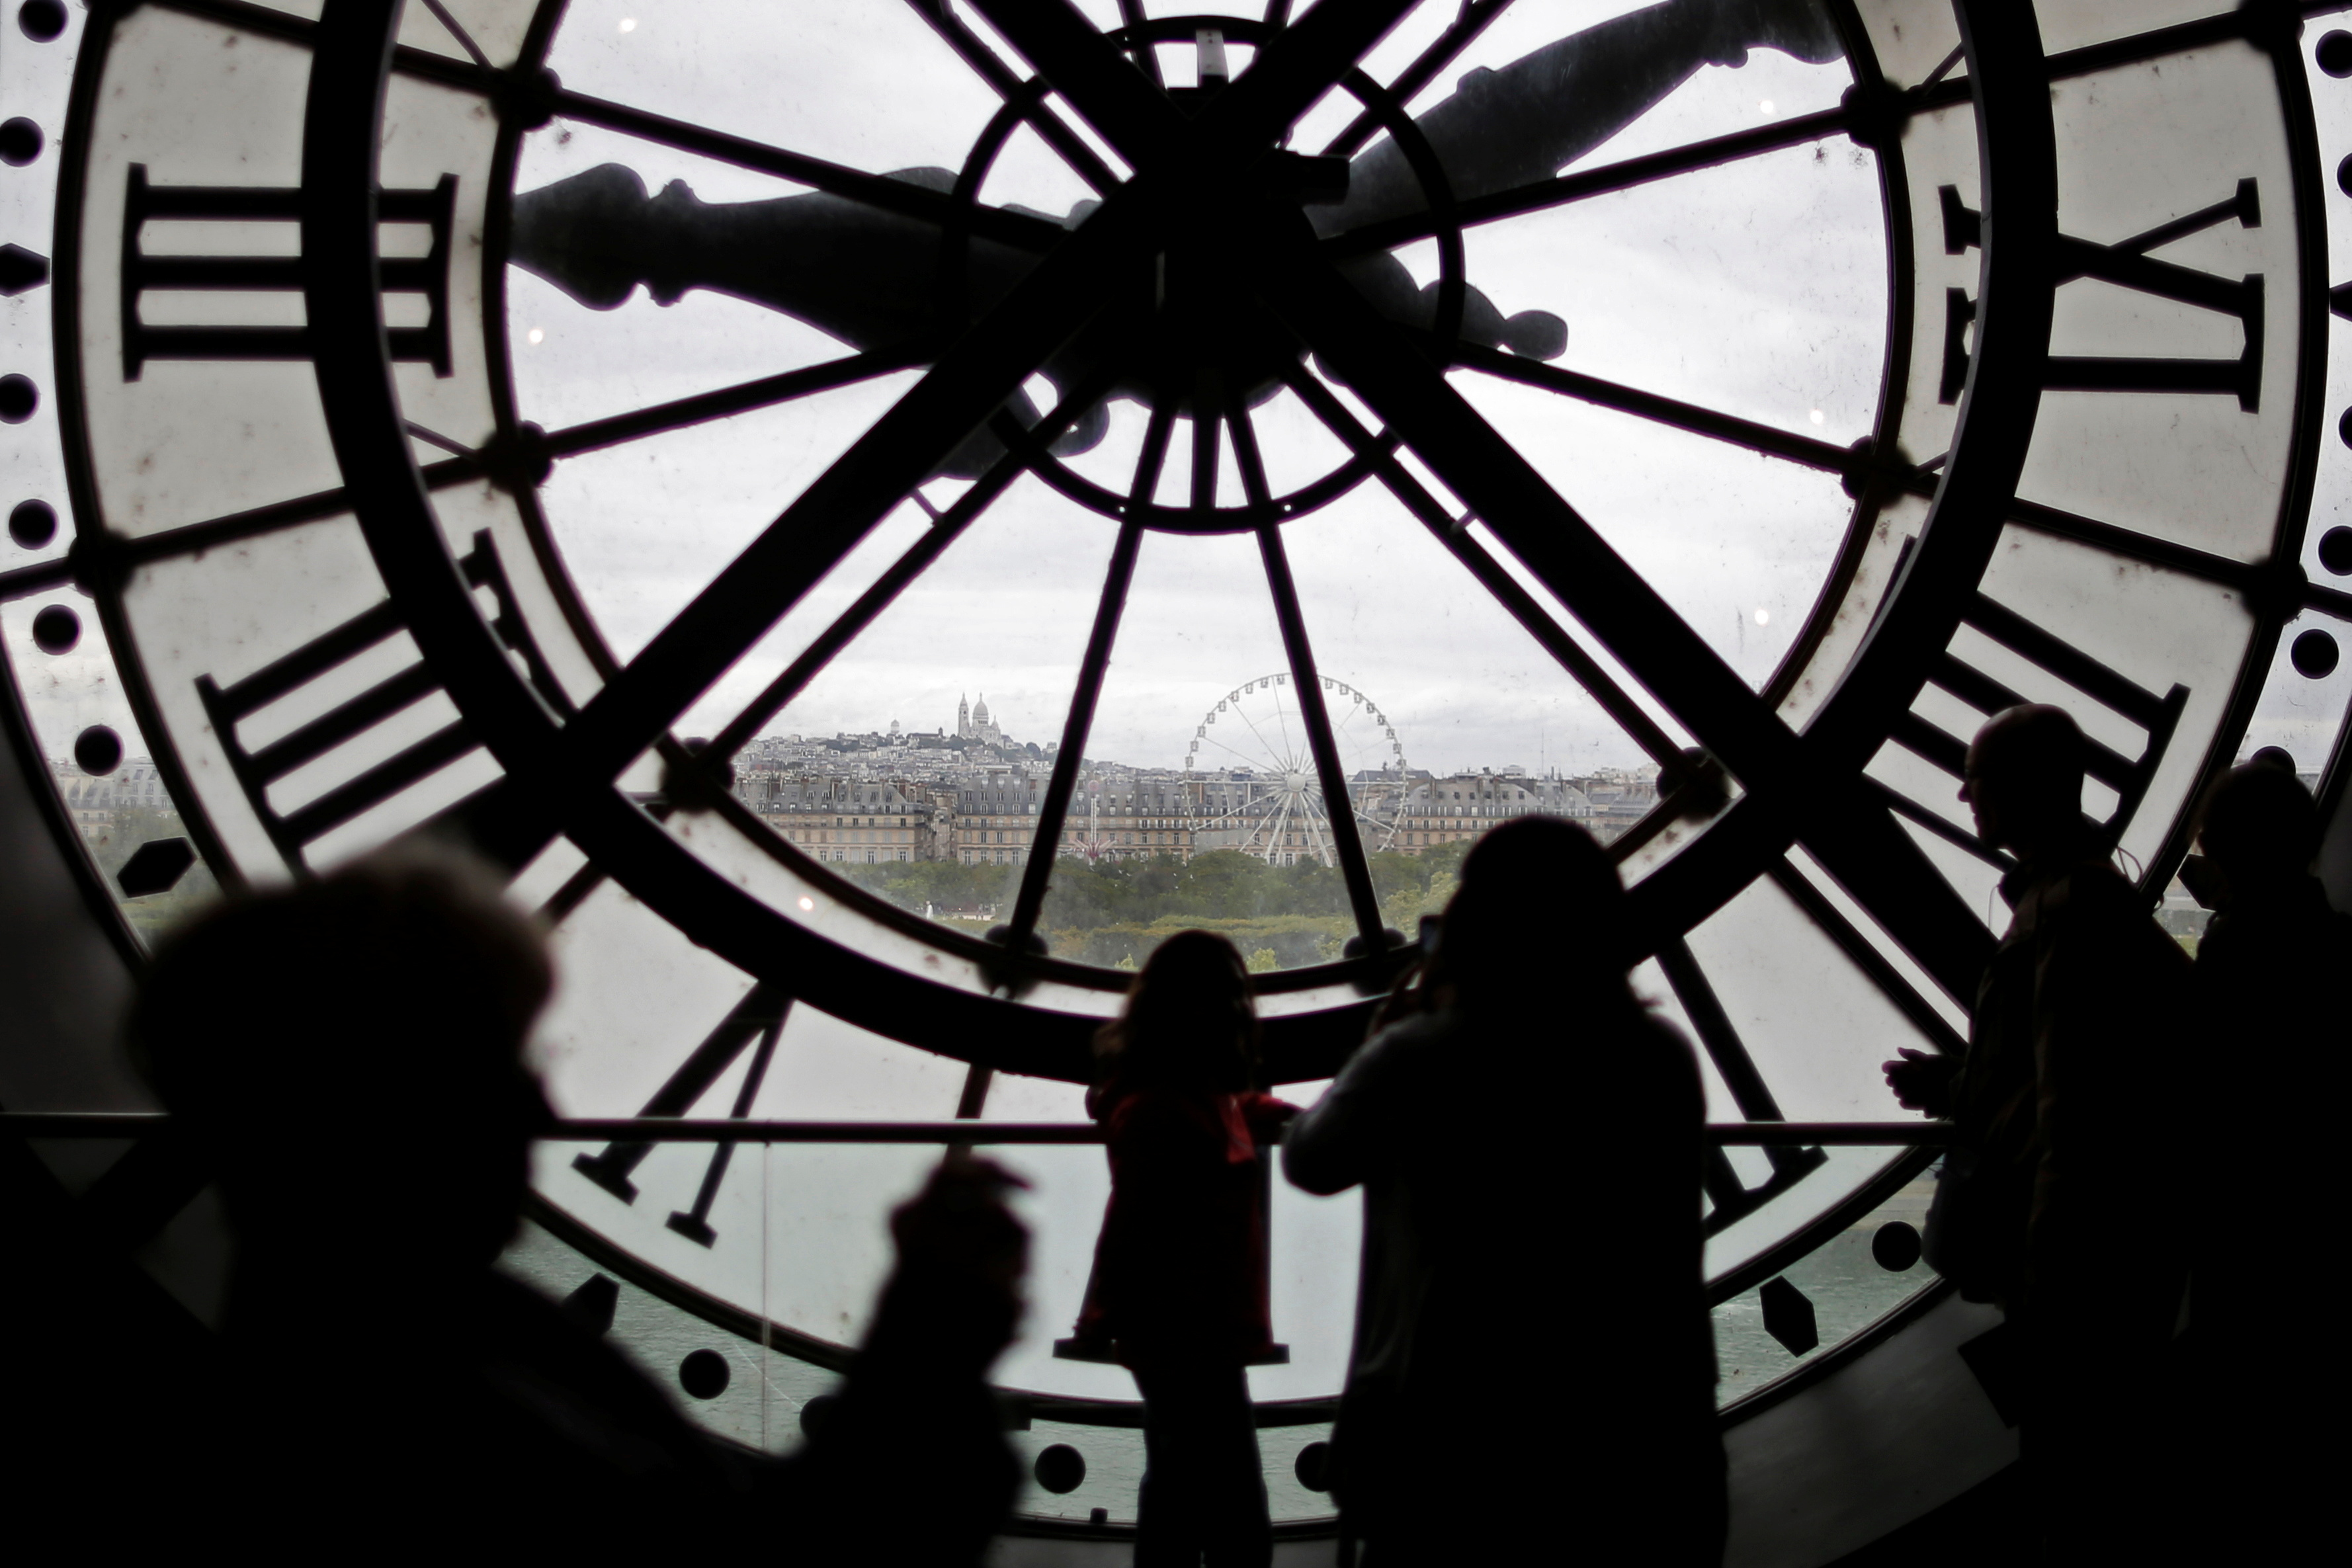 Visitors at the Musee d'Orsay are seen in silhouette as they look behind a giant clock face at the former Orsay railway station, in Paris, France, July 28, 2015. REUTERS/Stephane Mahe/File Photo